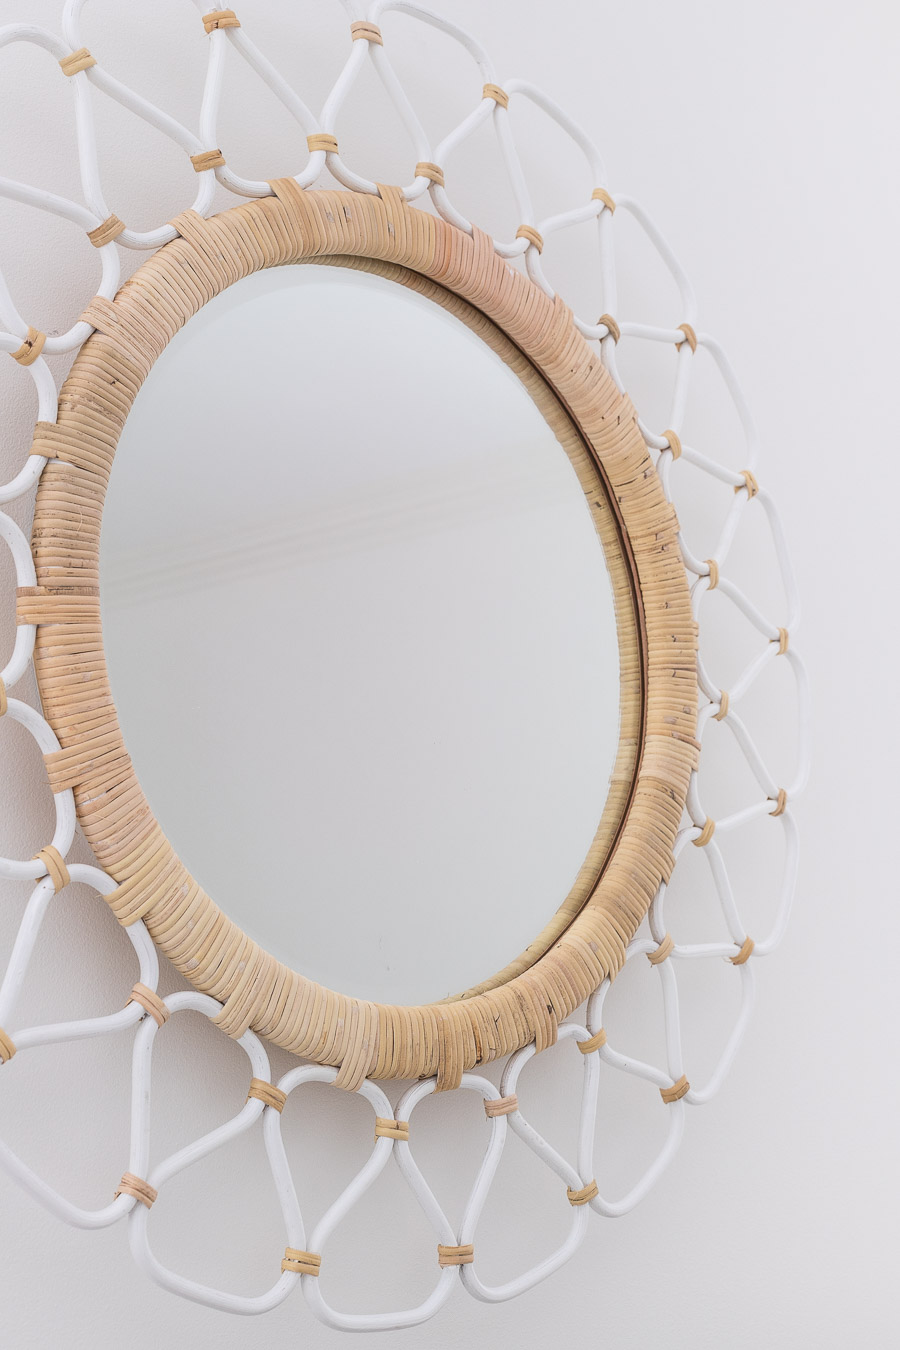 This rattan mirror looks so good above her bed! Love the colors and texture!